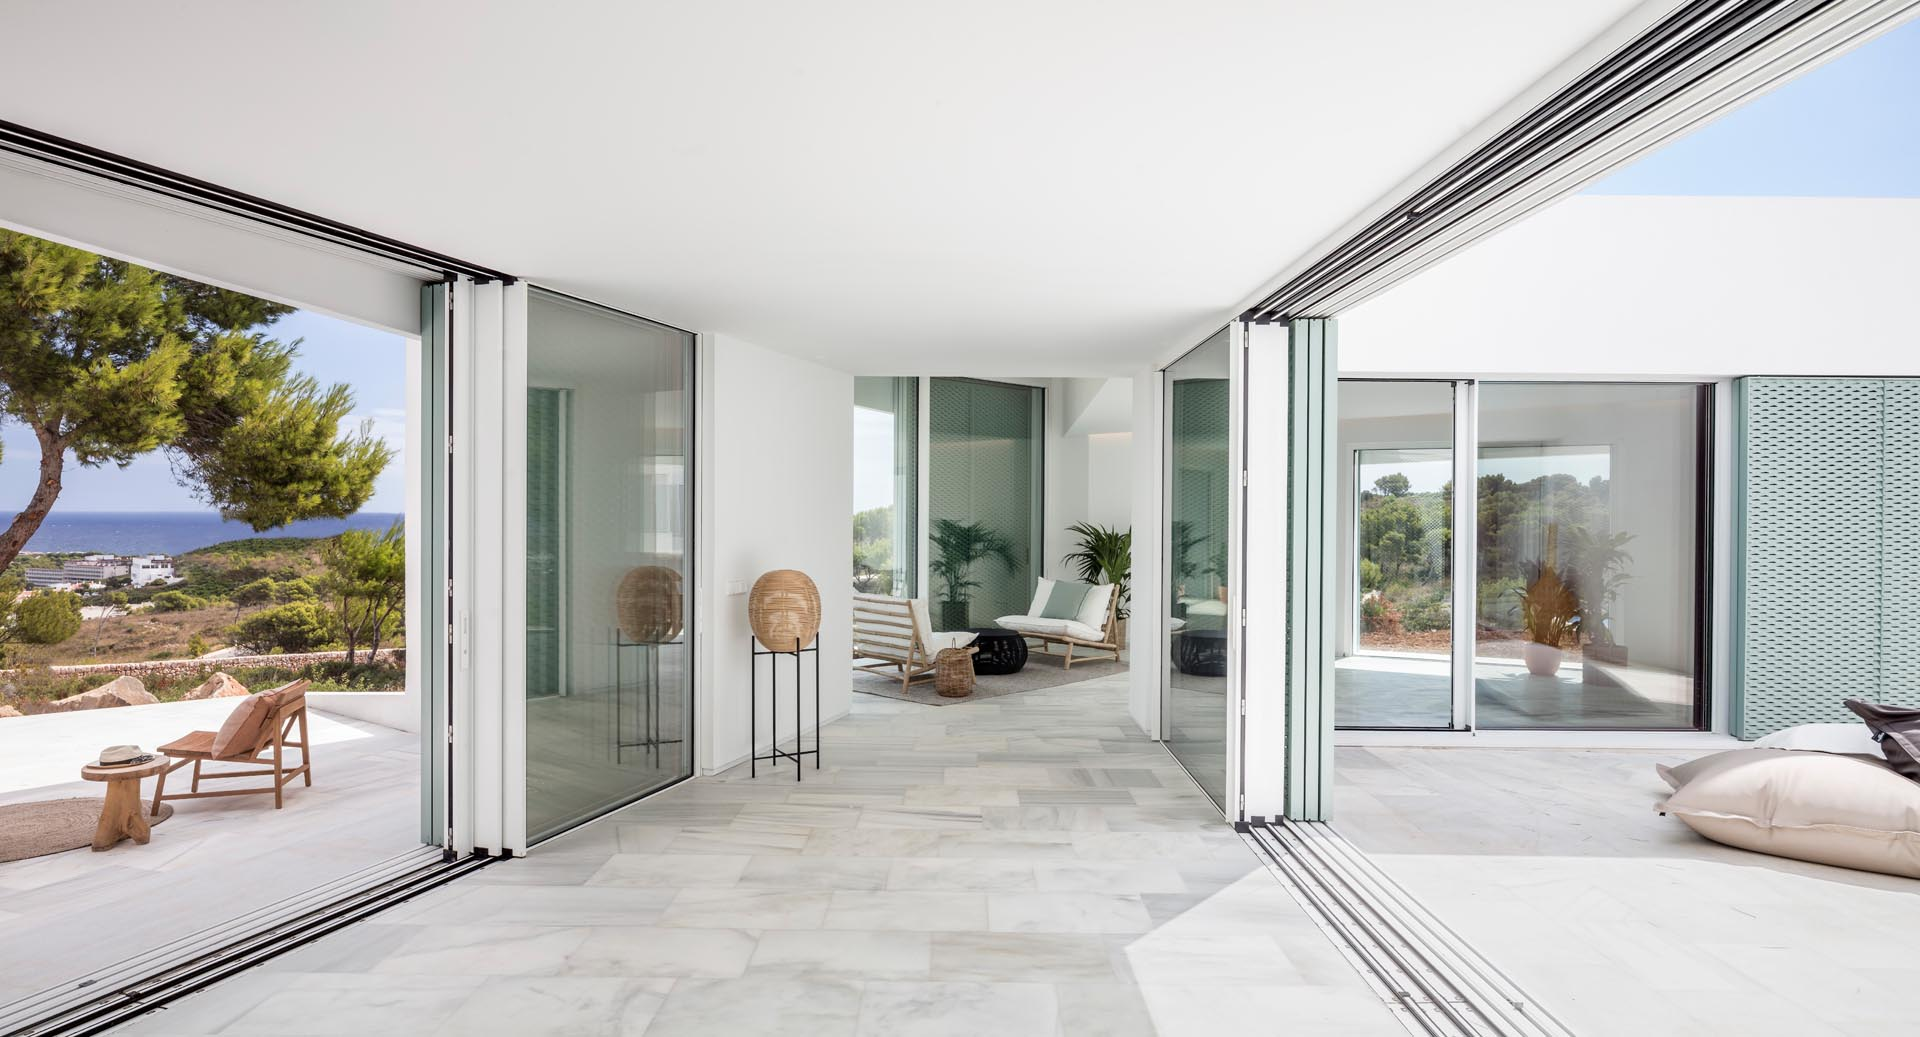 Sliding glass doors connect the interior spaces with outdoor patios.